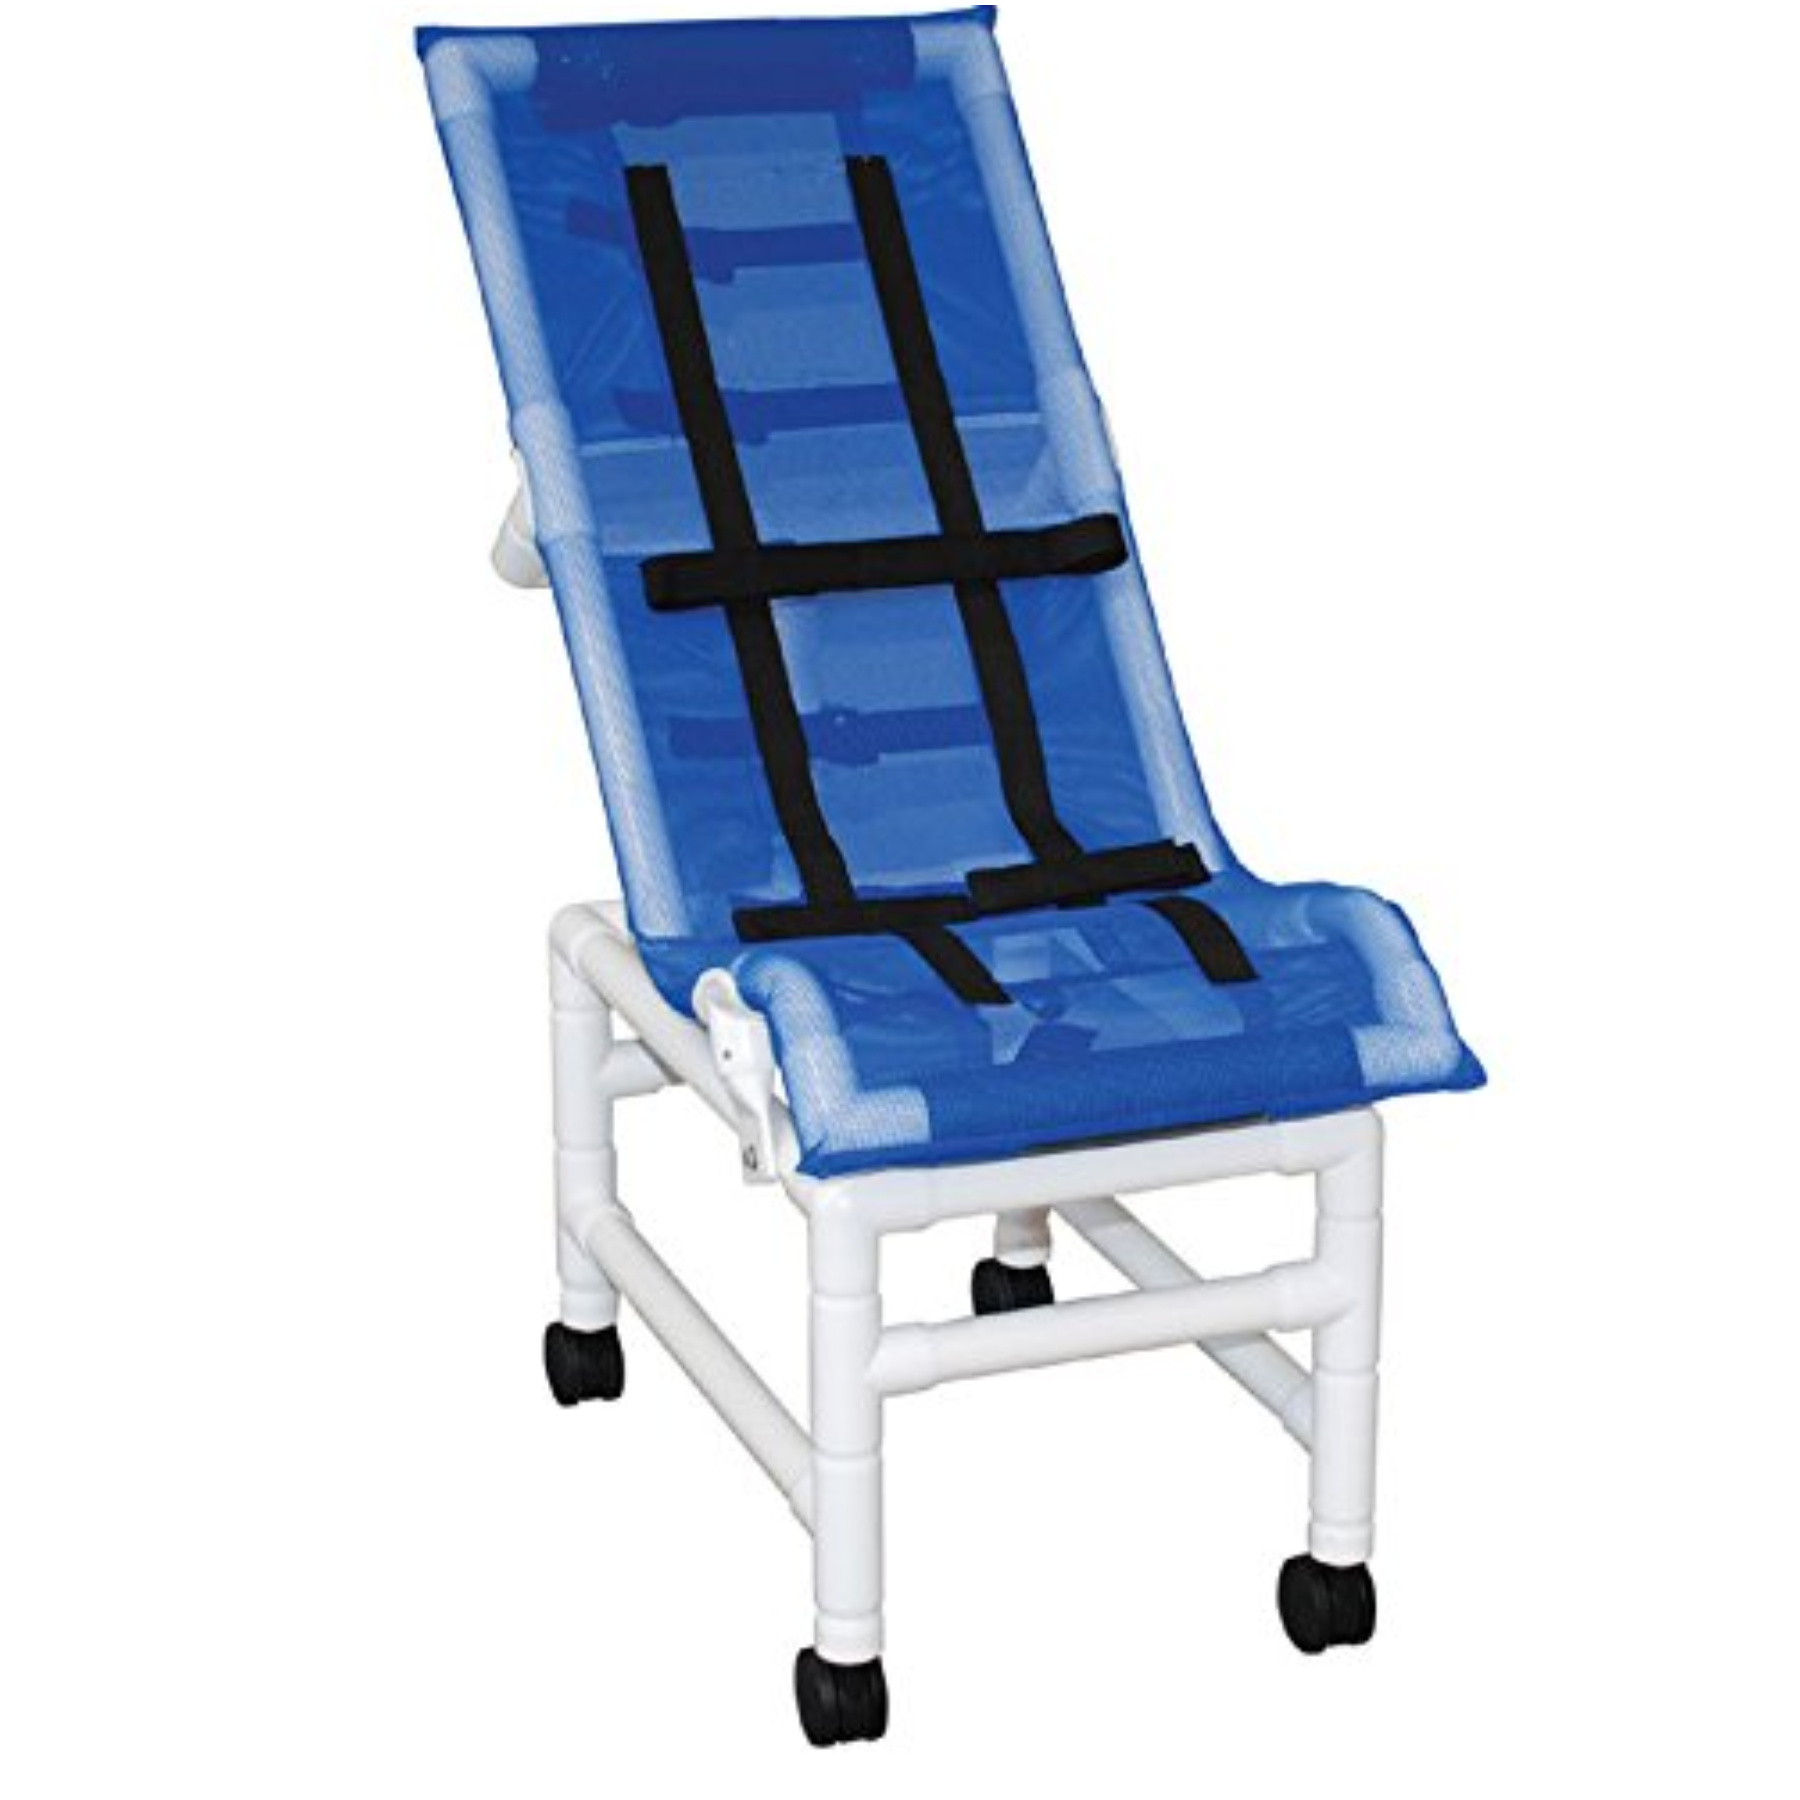 Bathroom Aids Shower Chairs Transfer Benches Shower Chairs